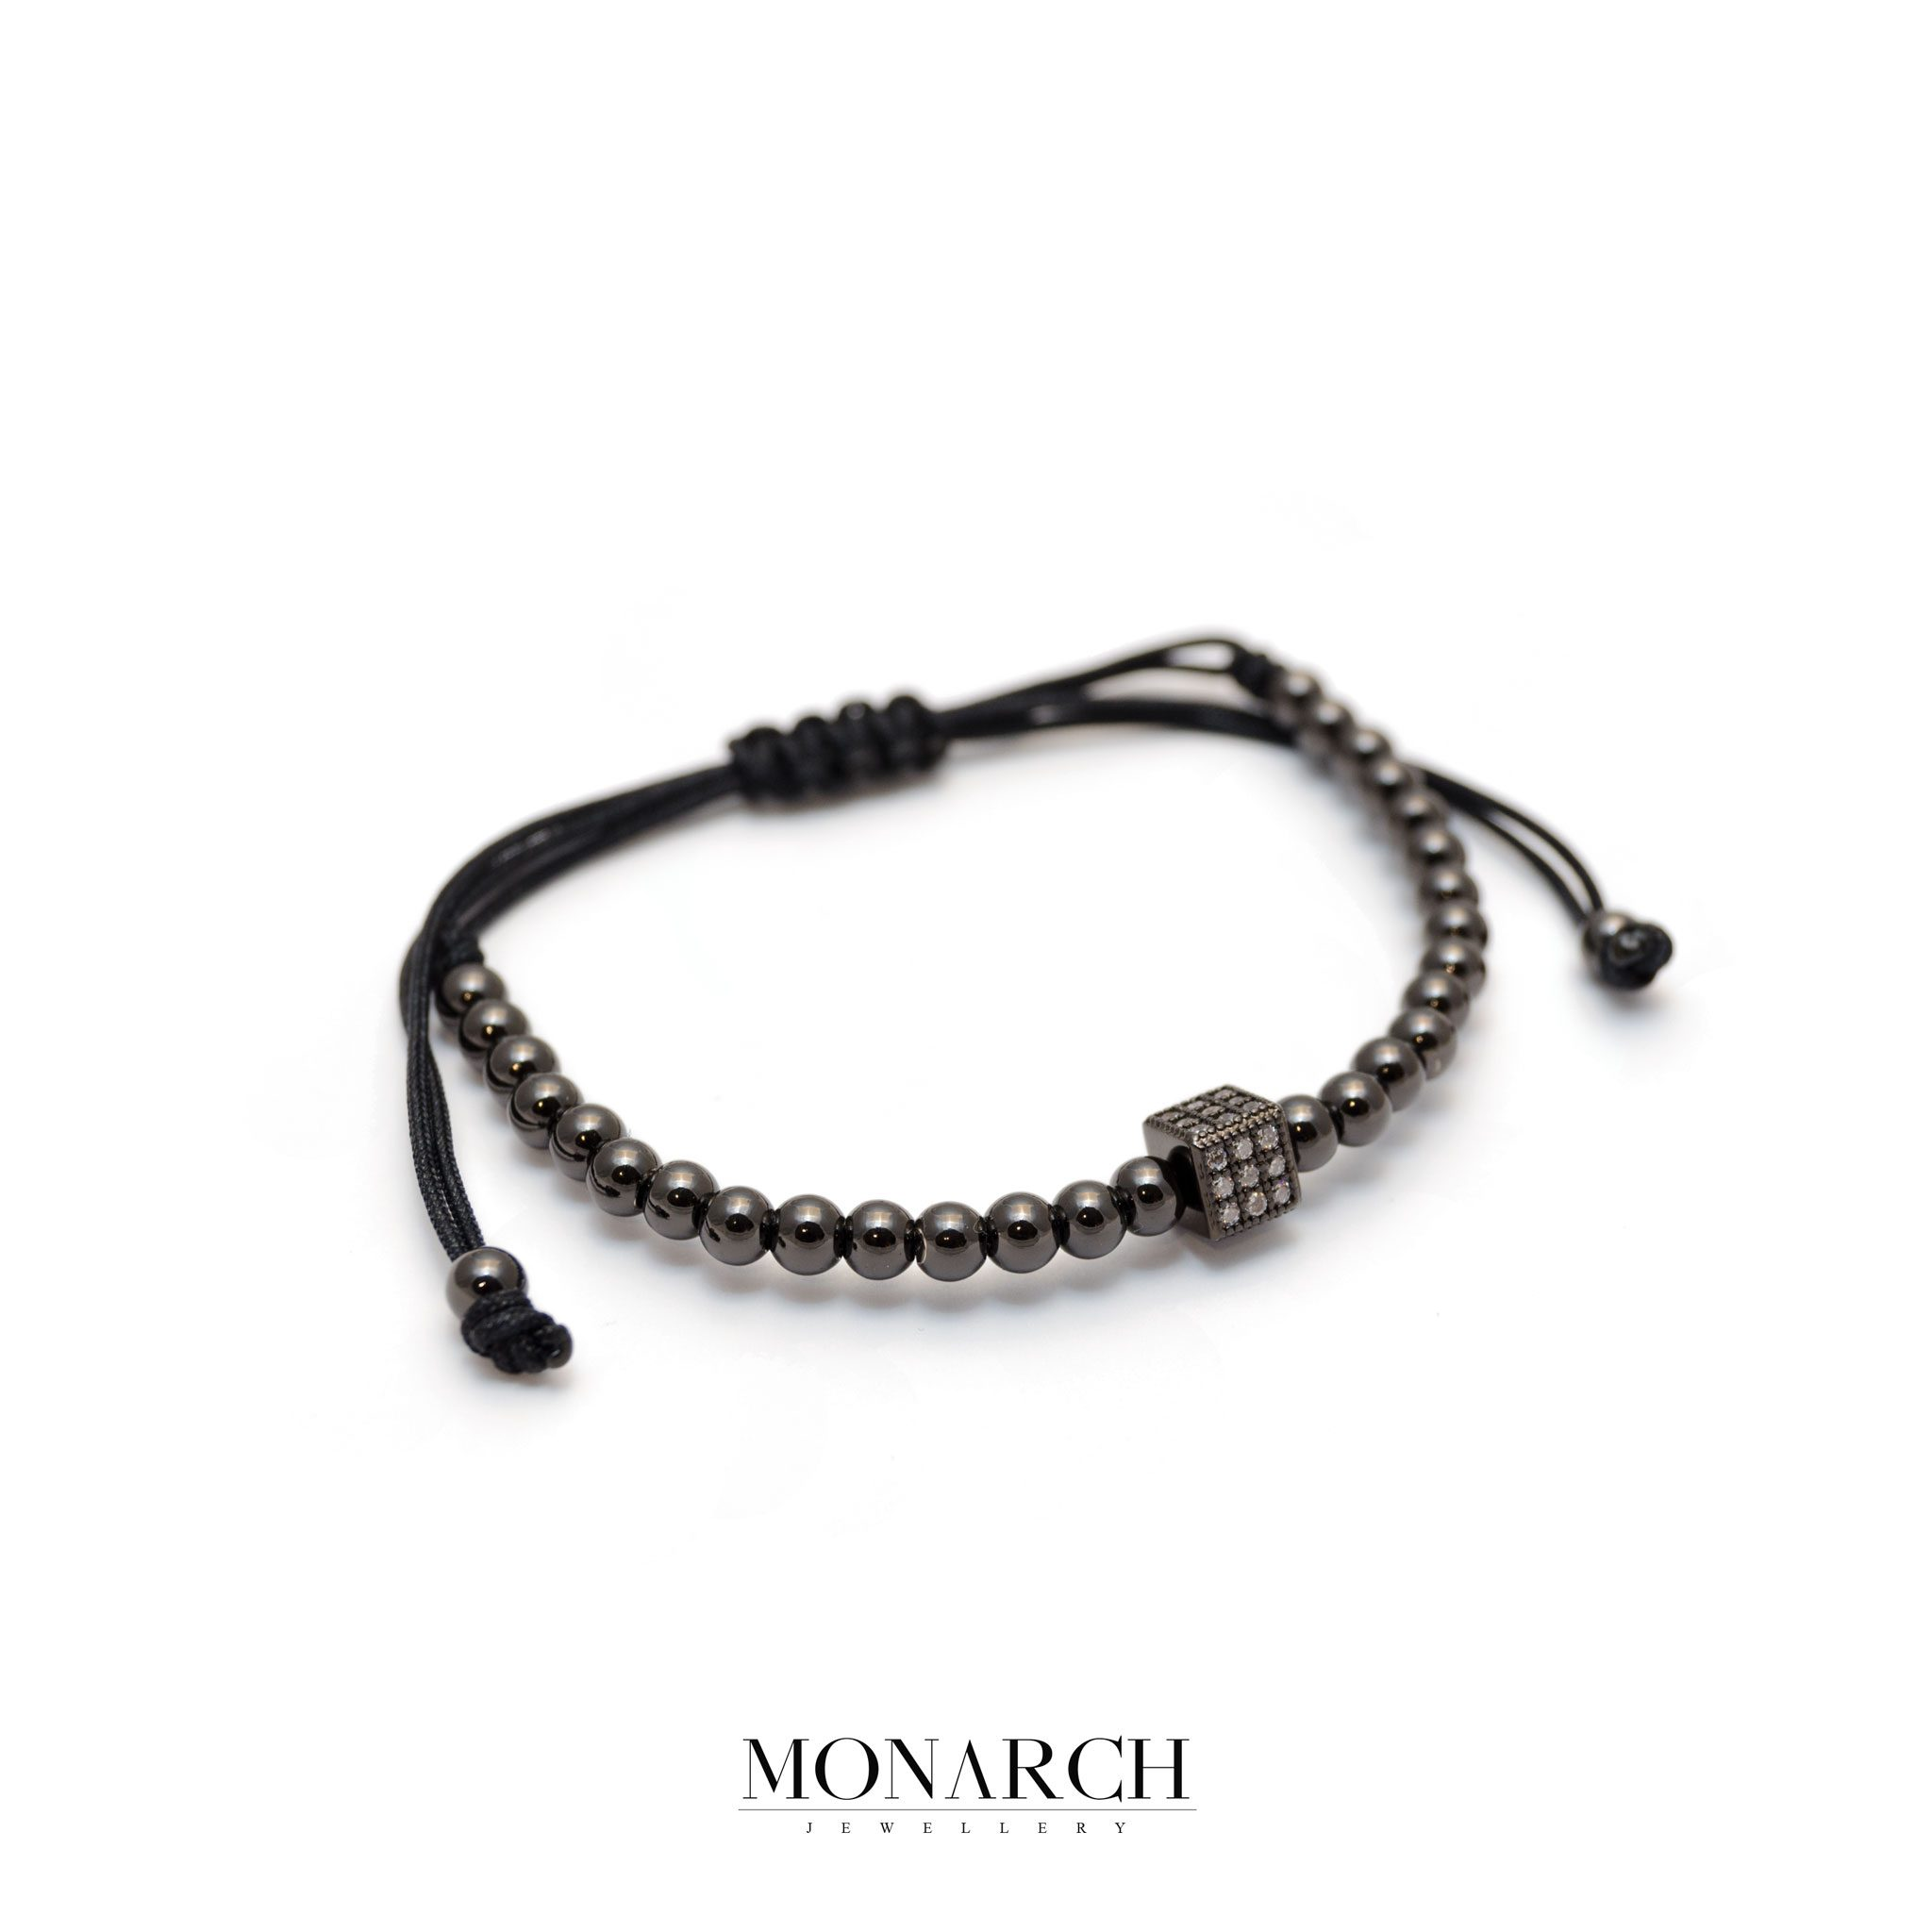 61-Monarch-Jewellery-Black-Cube-Macrame-Bracelet-resized